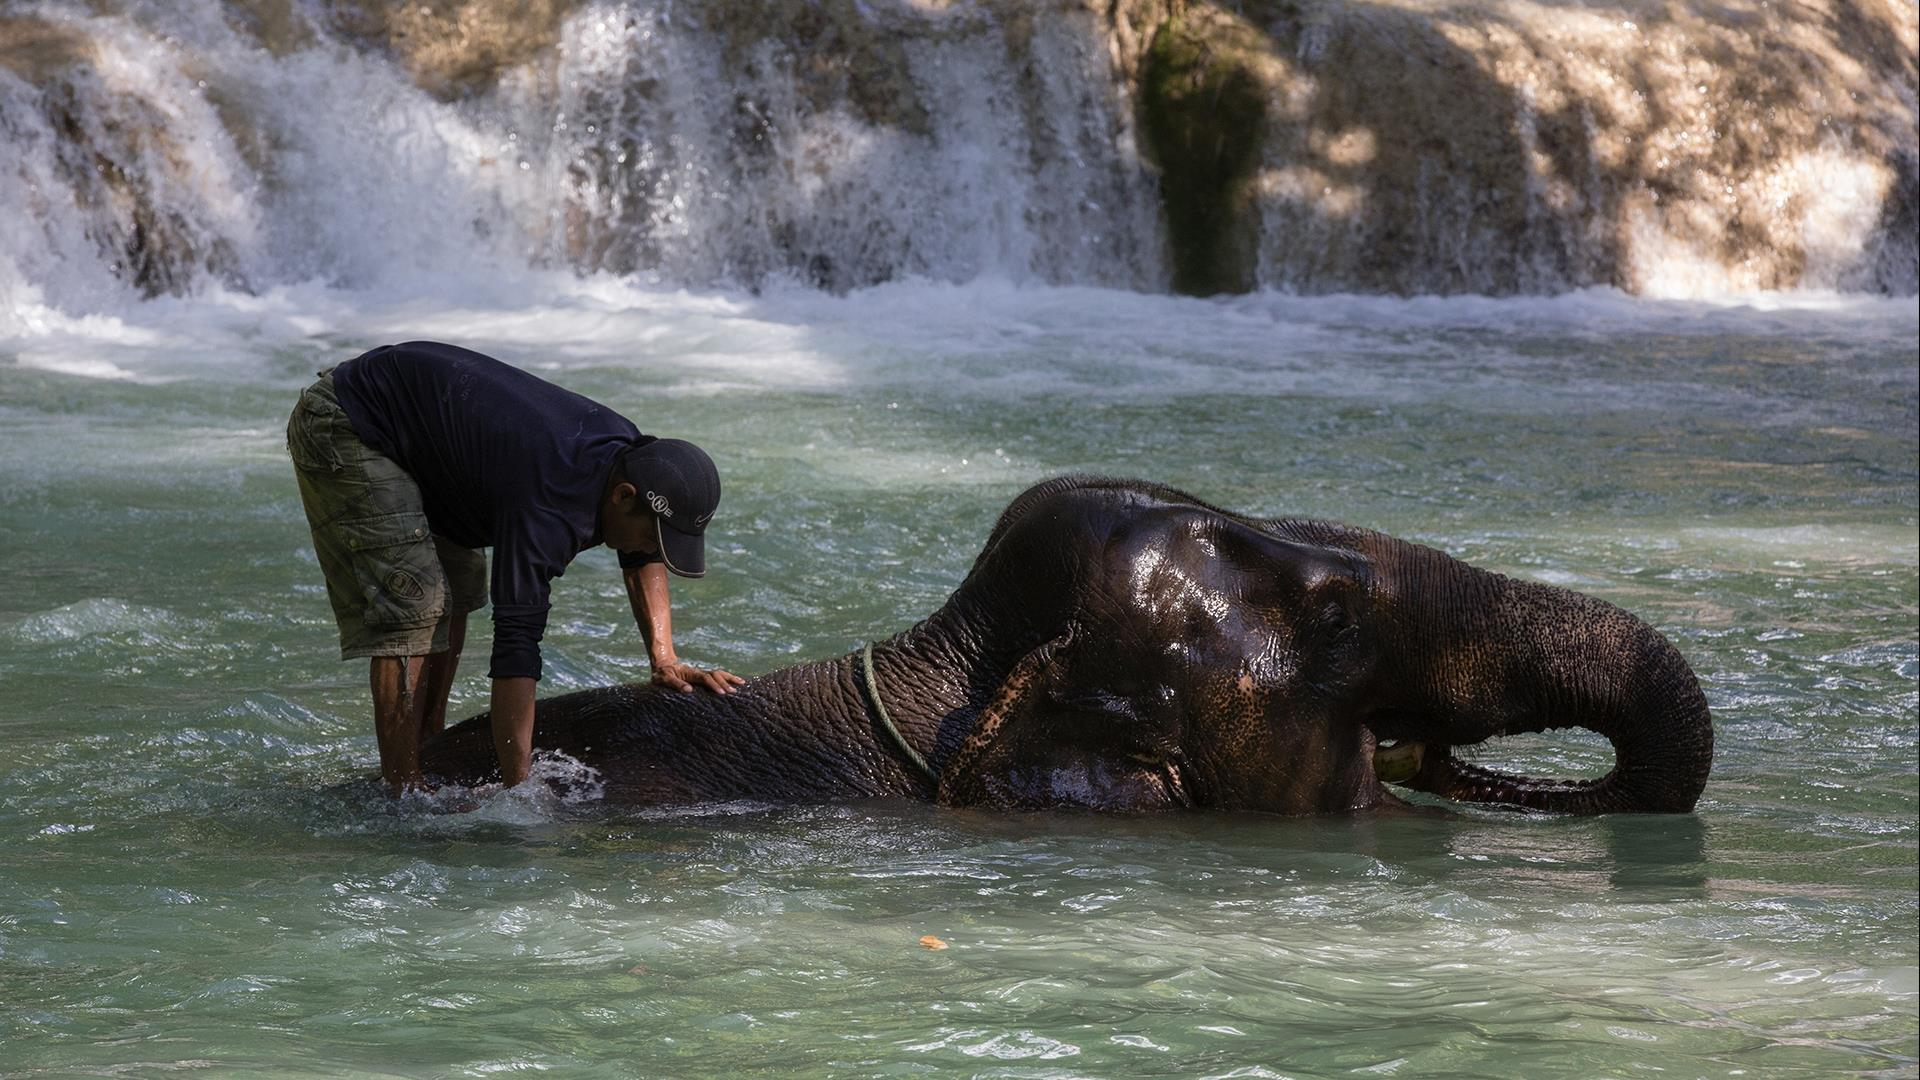 Laos, Luang Prabang : Deluxe Elephant Interaction Experience - 1 Day | Nature and Elephants